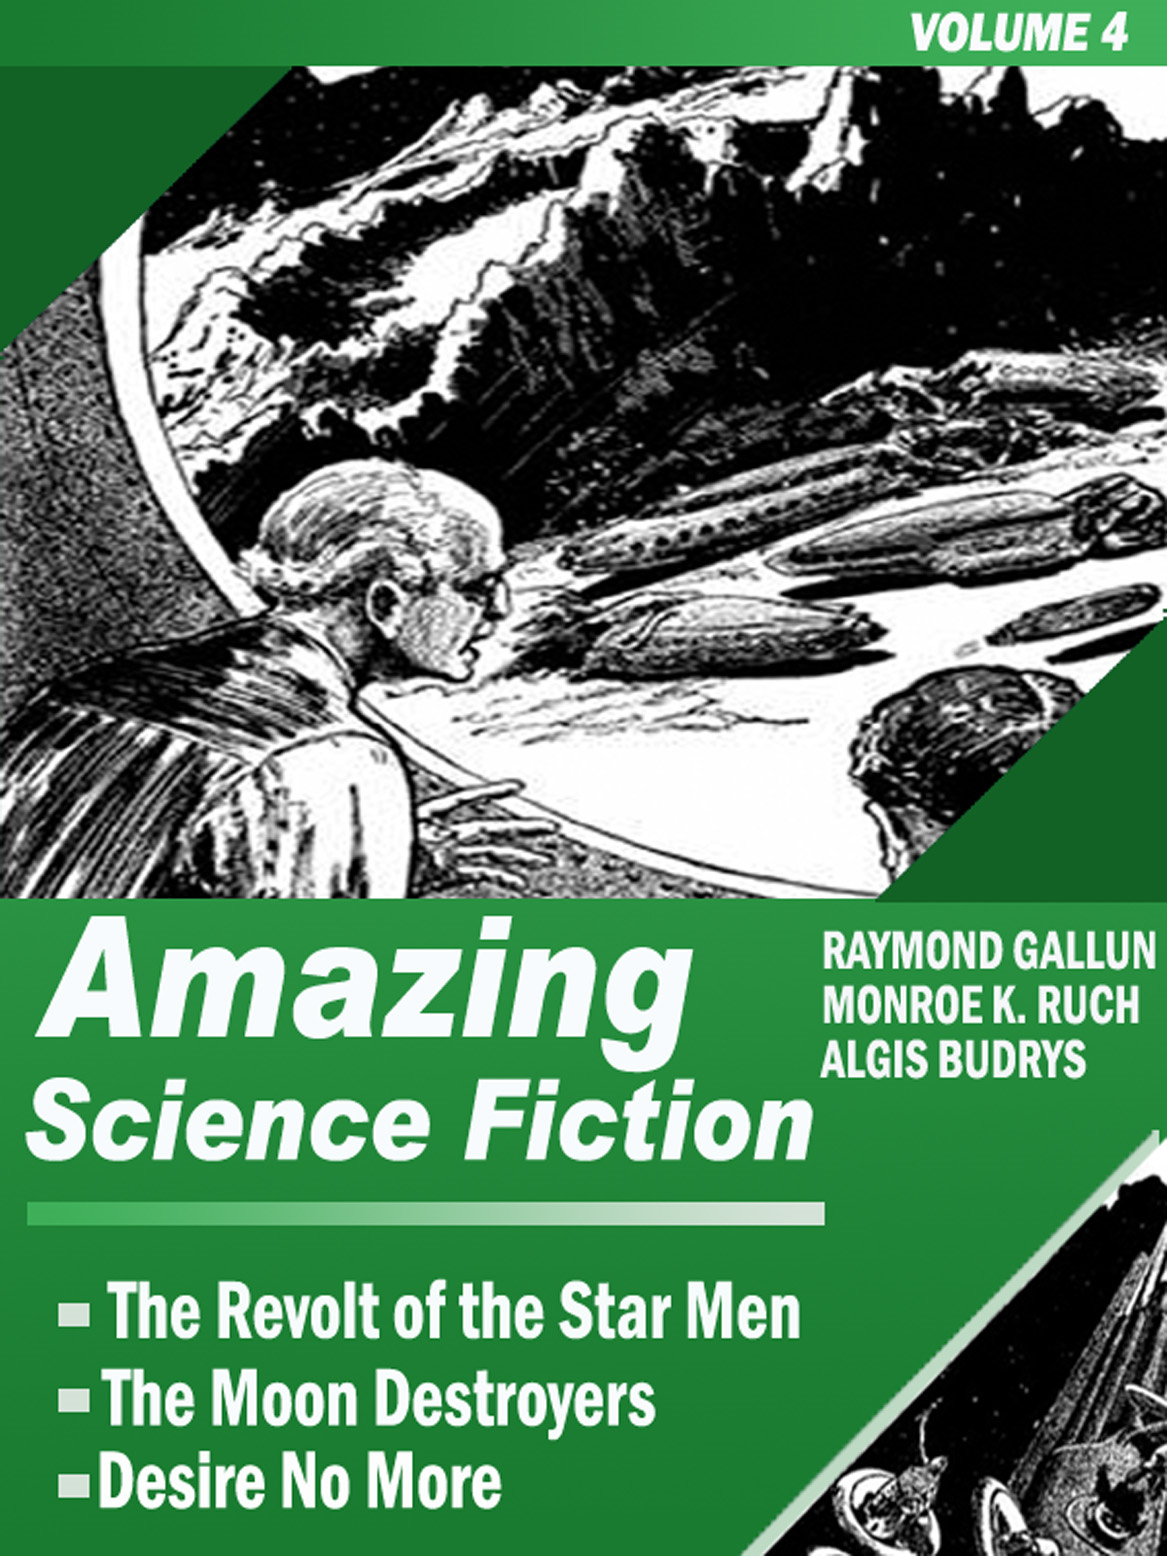 Amazing Science Fiction - Volume 4 (The Revolt of the Star Men, The Moon Destroyers, Desire No More)